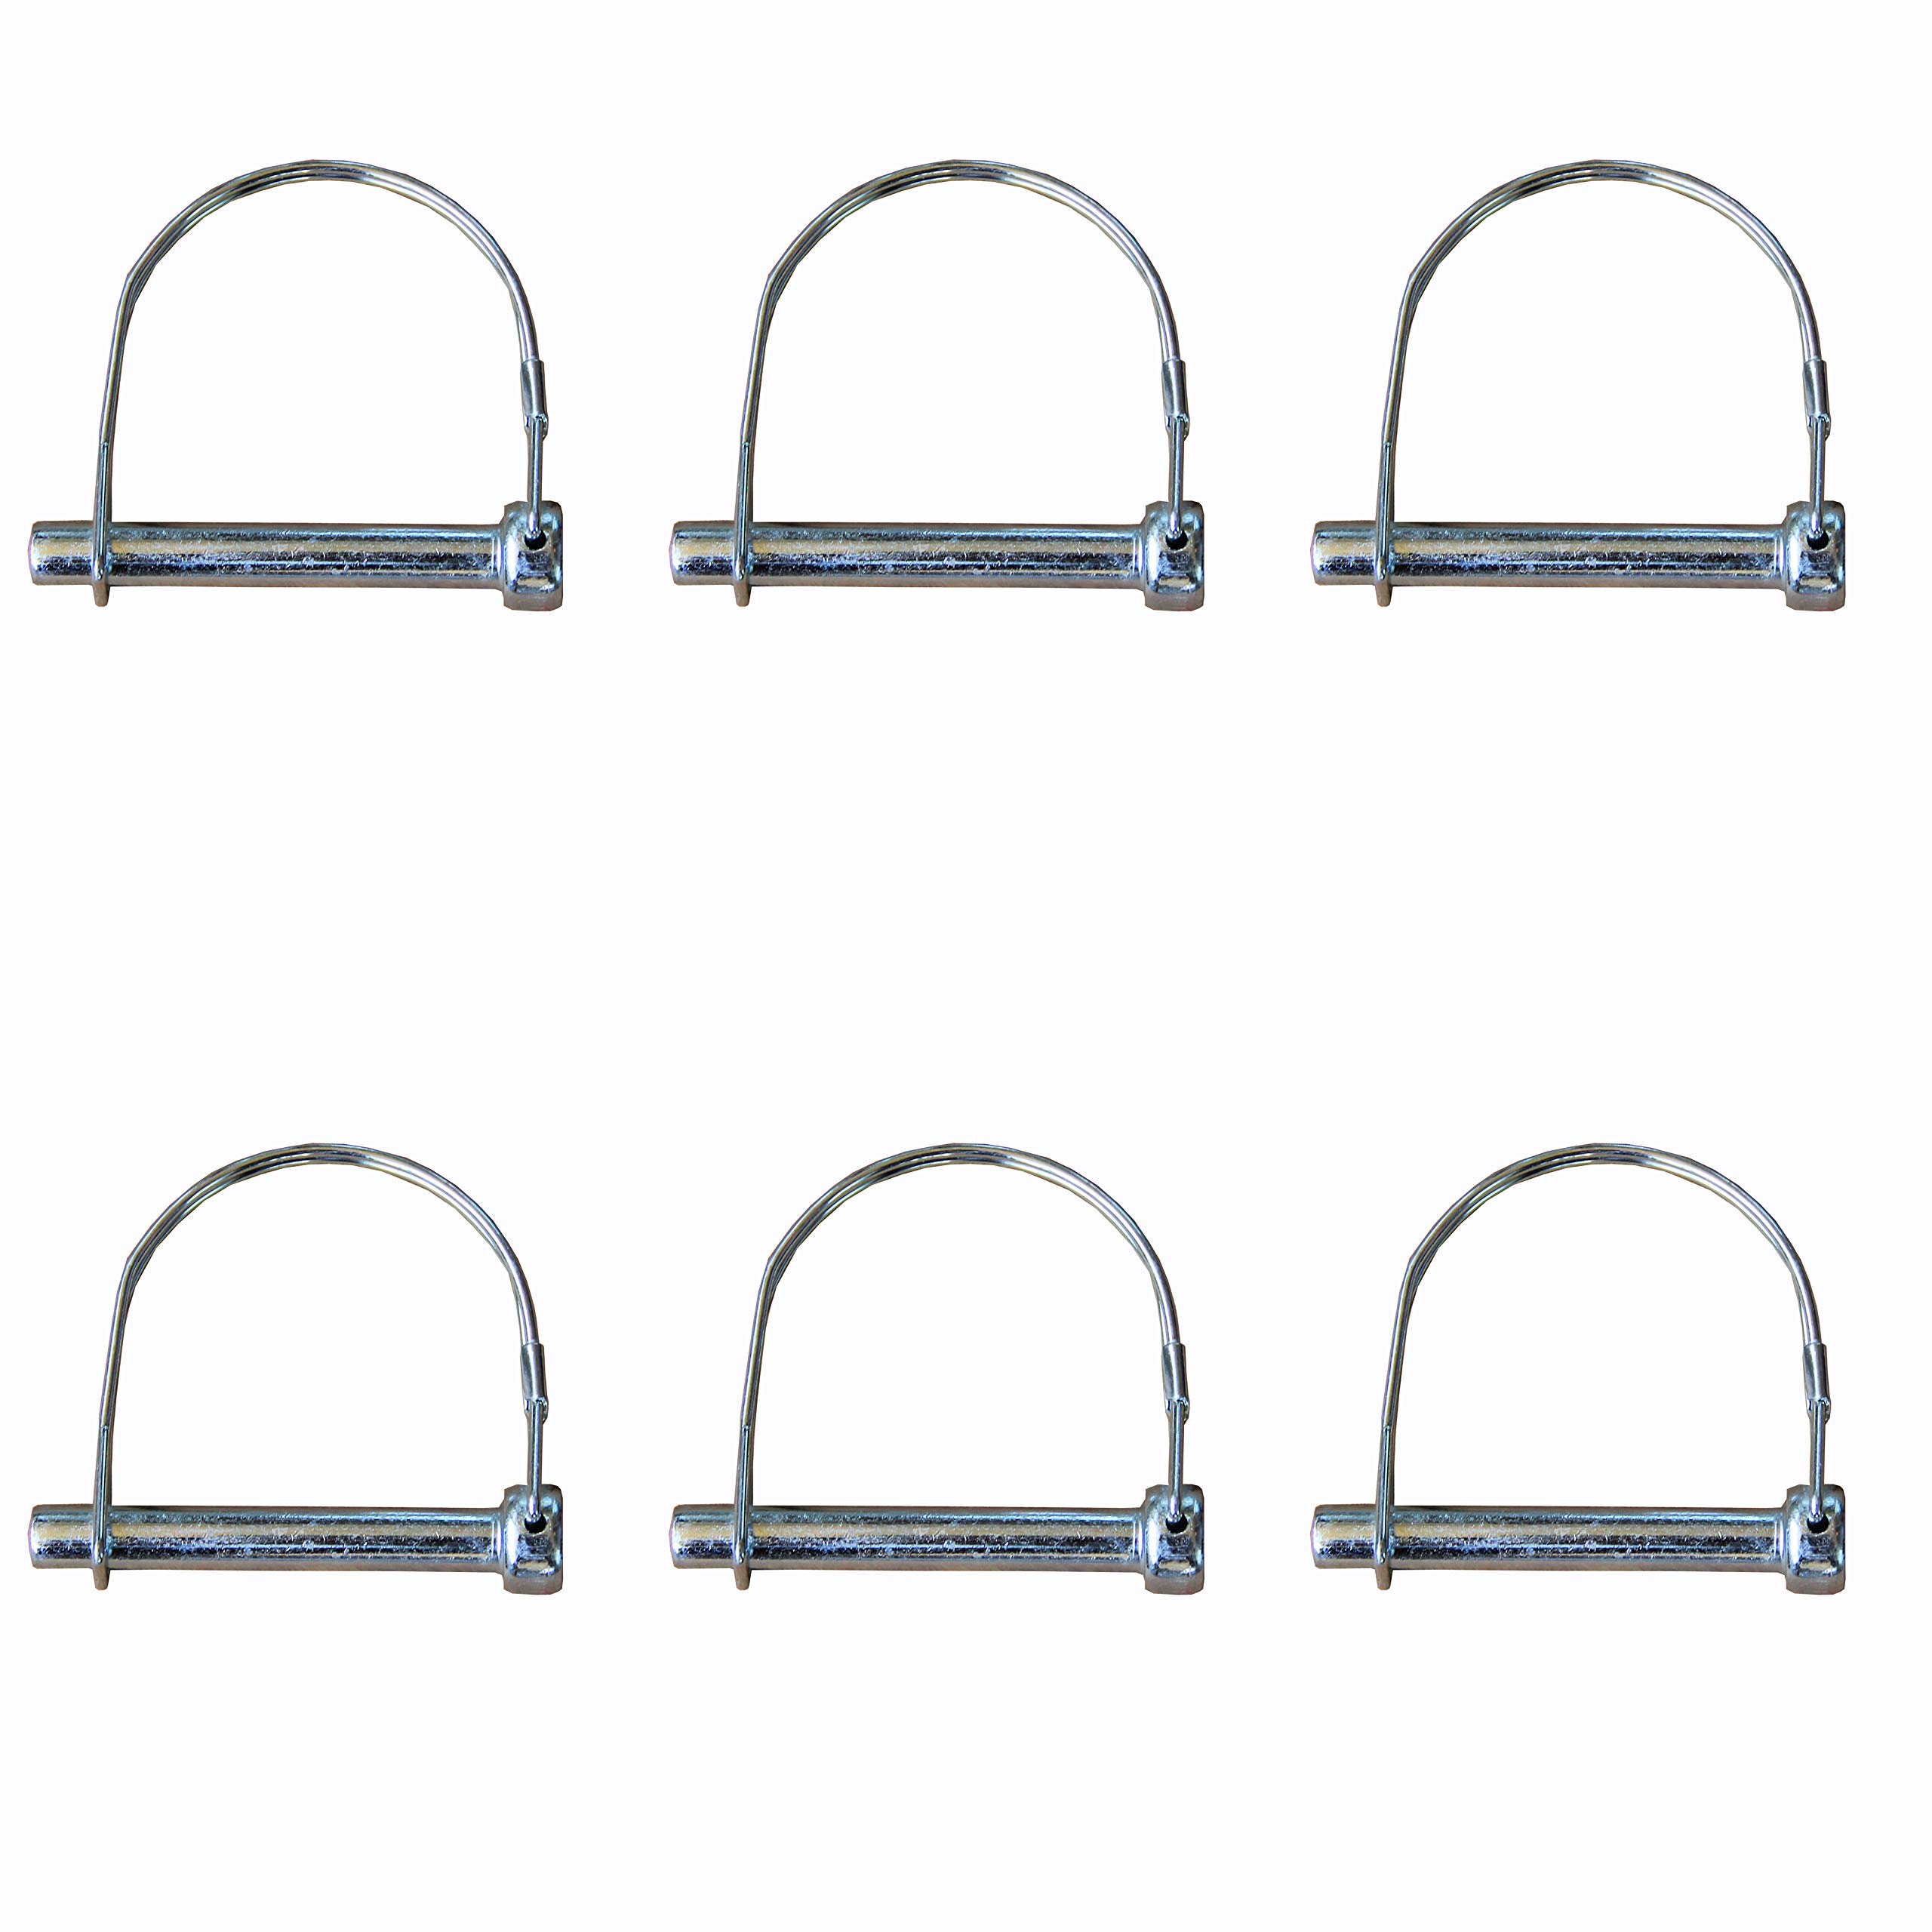 Scaffolding Caster Snap Pin 6 Sets Cycle Brand New Prisms